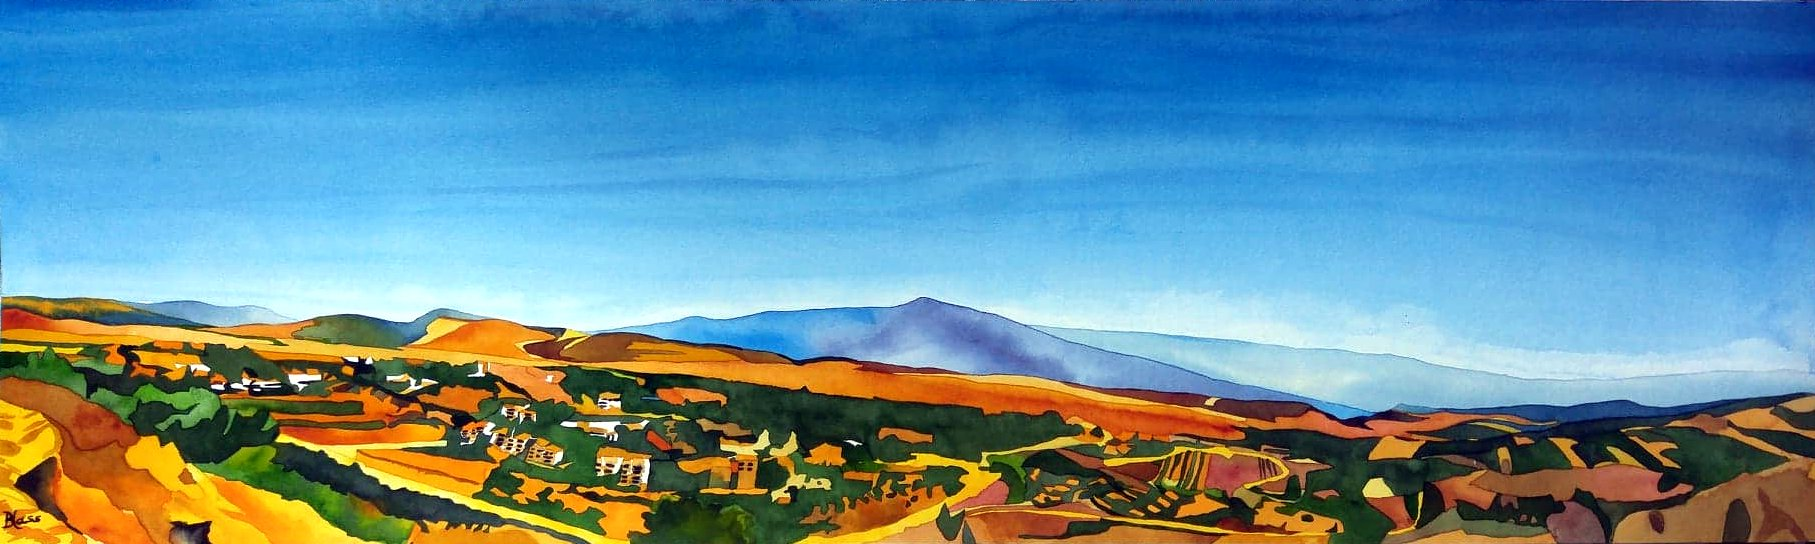 """Hula Valley"", watercolour on board, 12x40"", $1400"